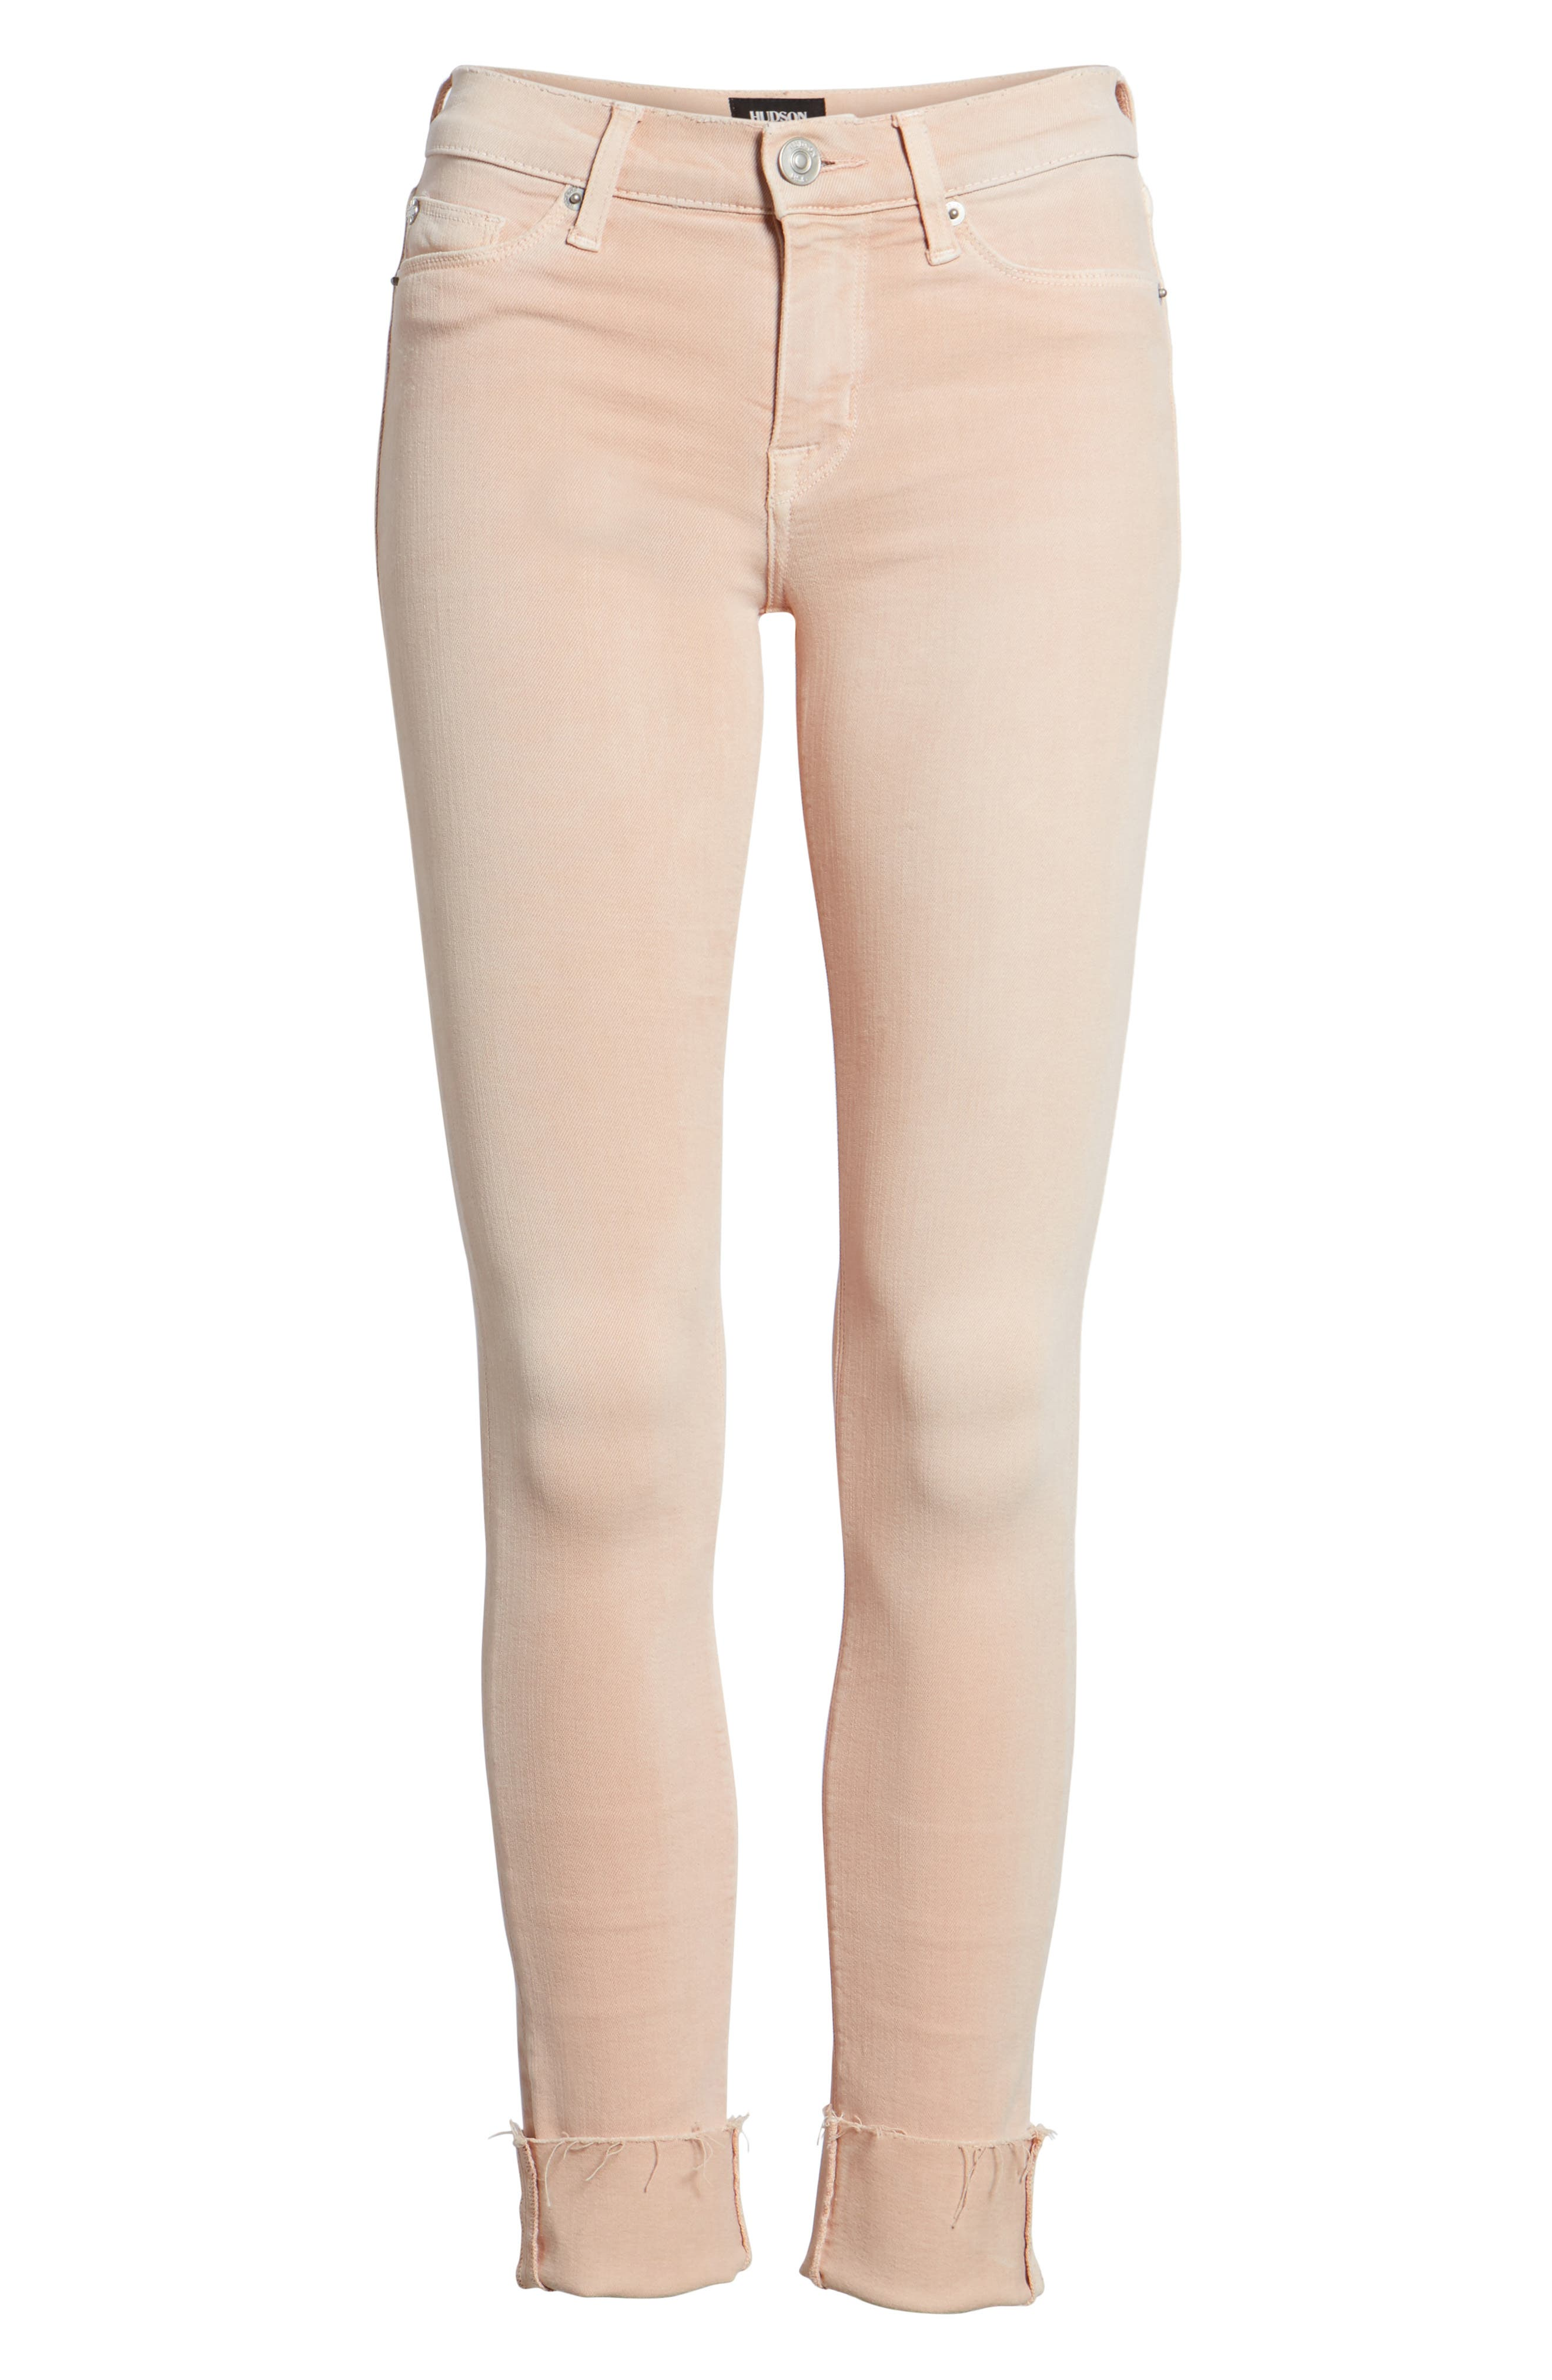 Tally Crop Skinny Jeans,                             Alternate thumbnail 7, color,                             Worn Rosewater